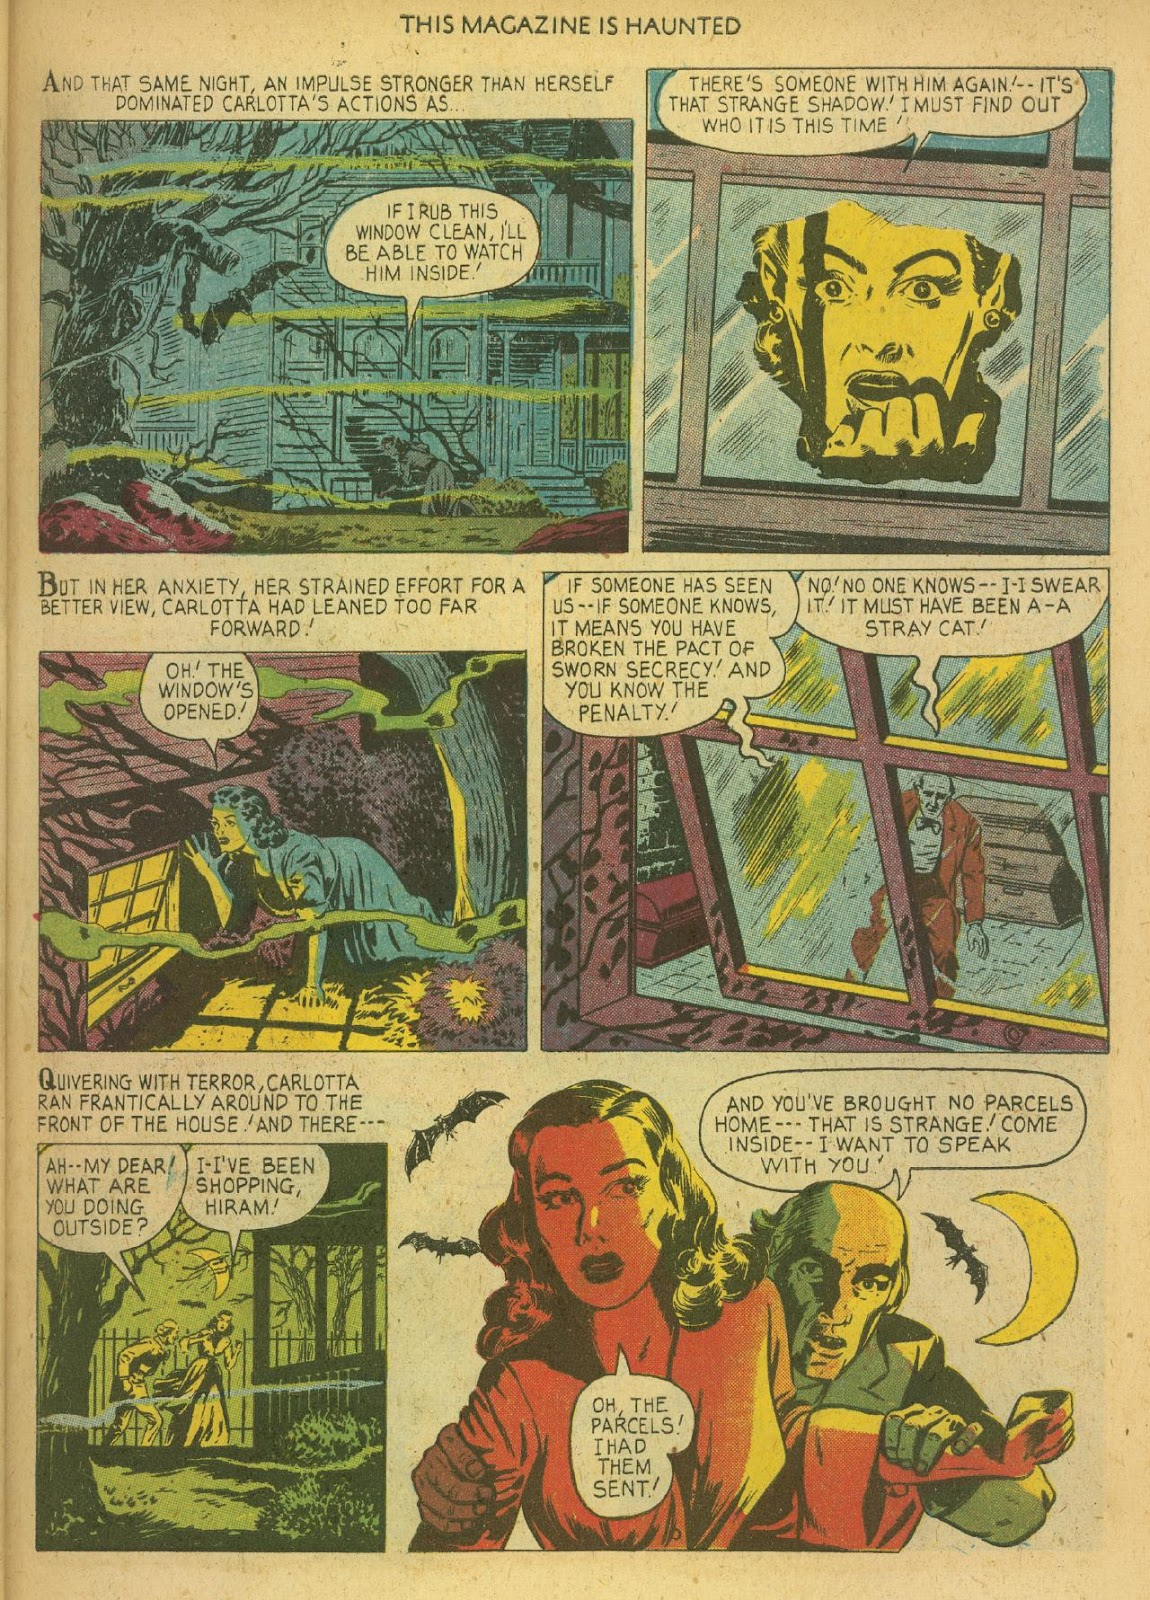 Read online This Magazine Is Haunted comic -  Issue #1 - 31